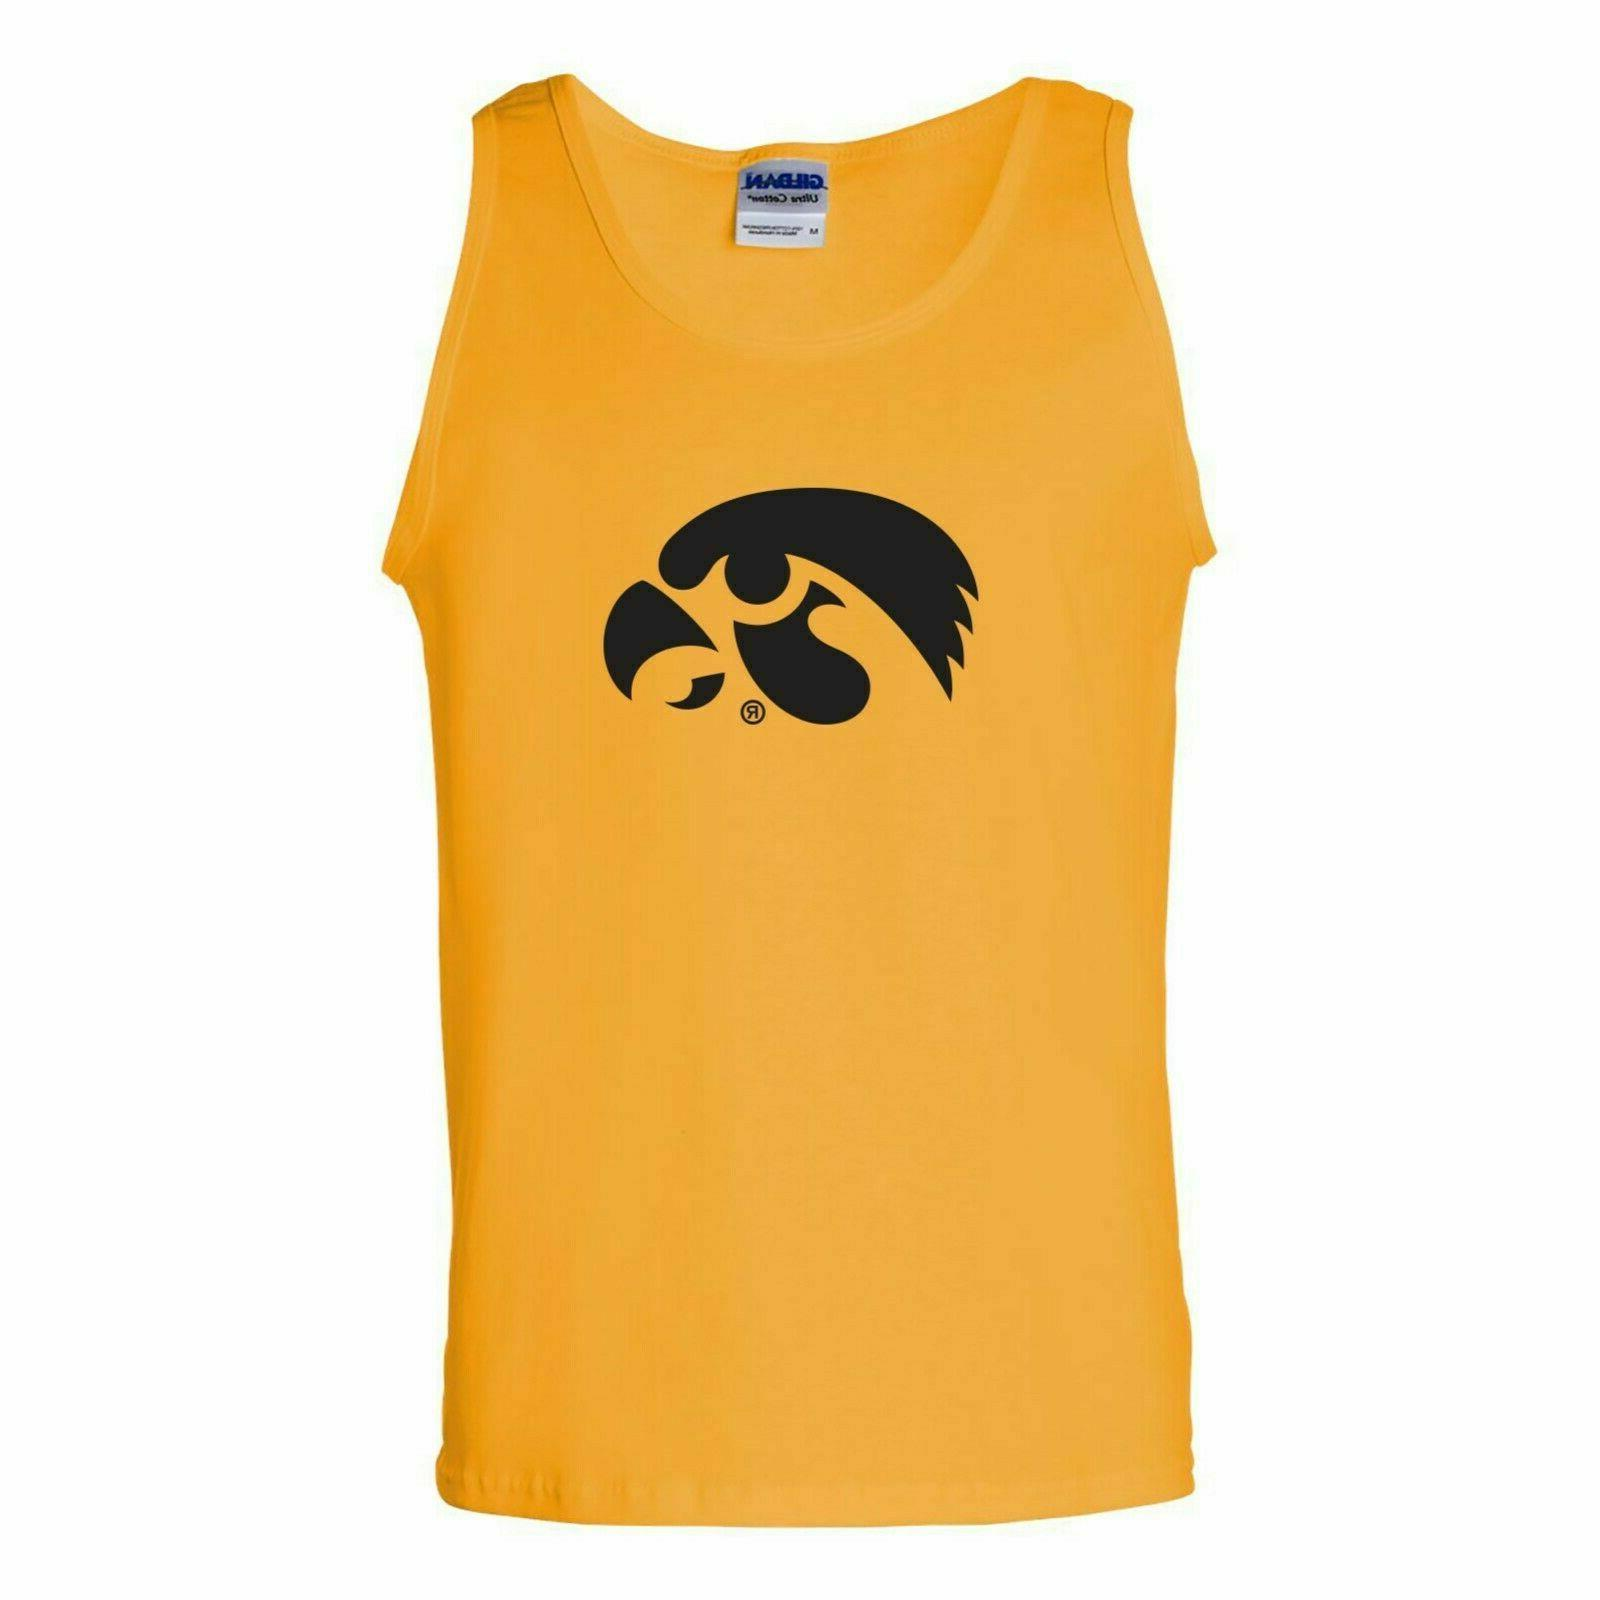 new iowa hawkeyes primary logo tank top